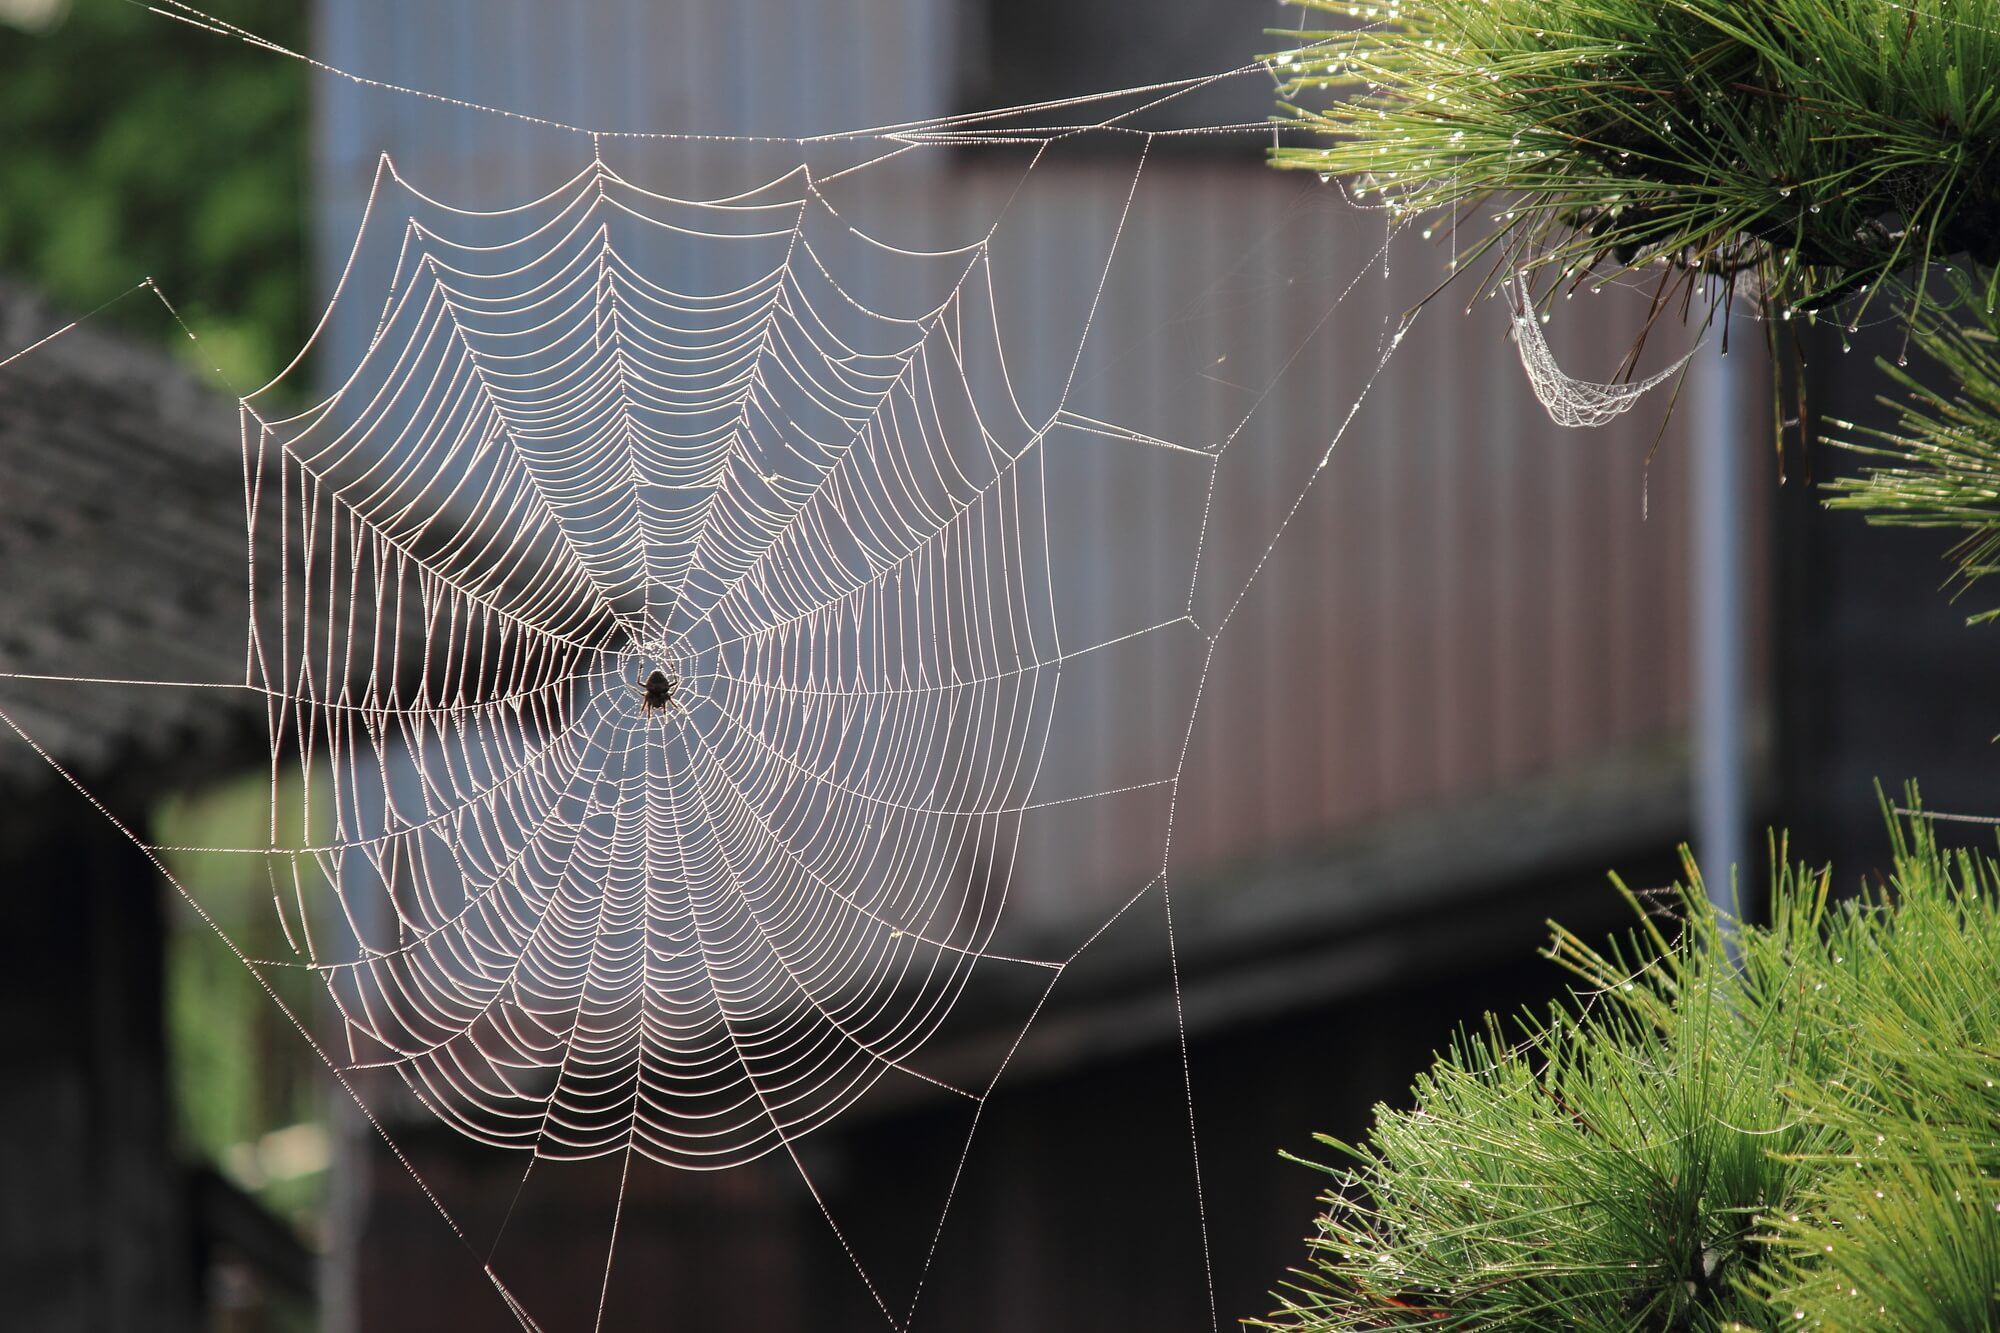 How To Get Rid Of The Baby Spider Nest 2020 - Image By commandpestcontrol